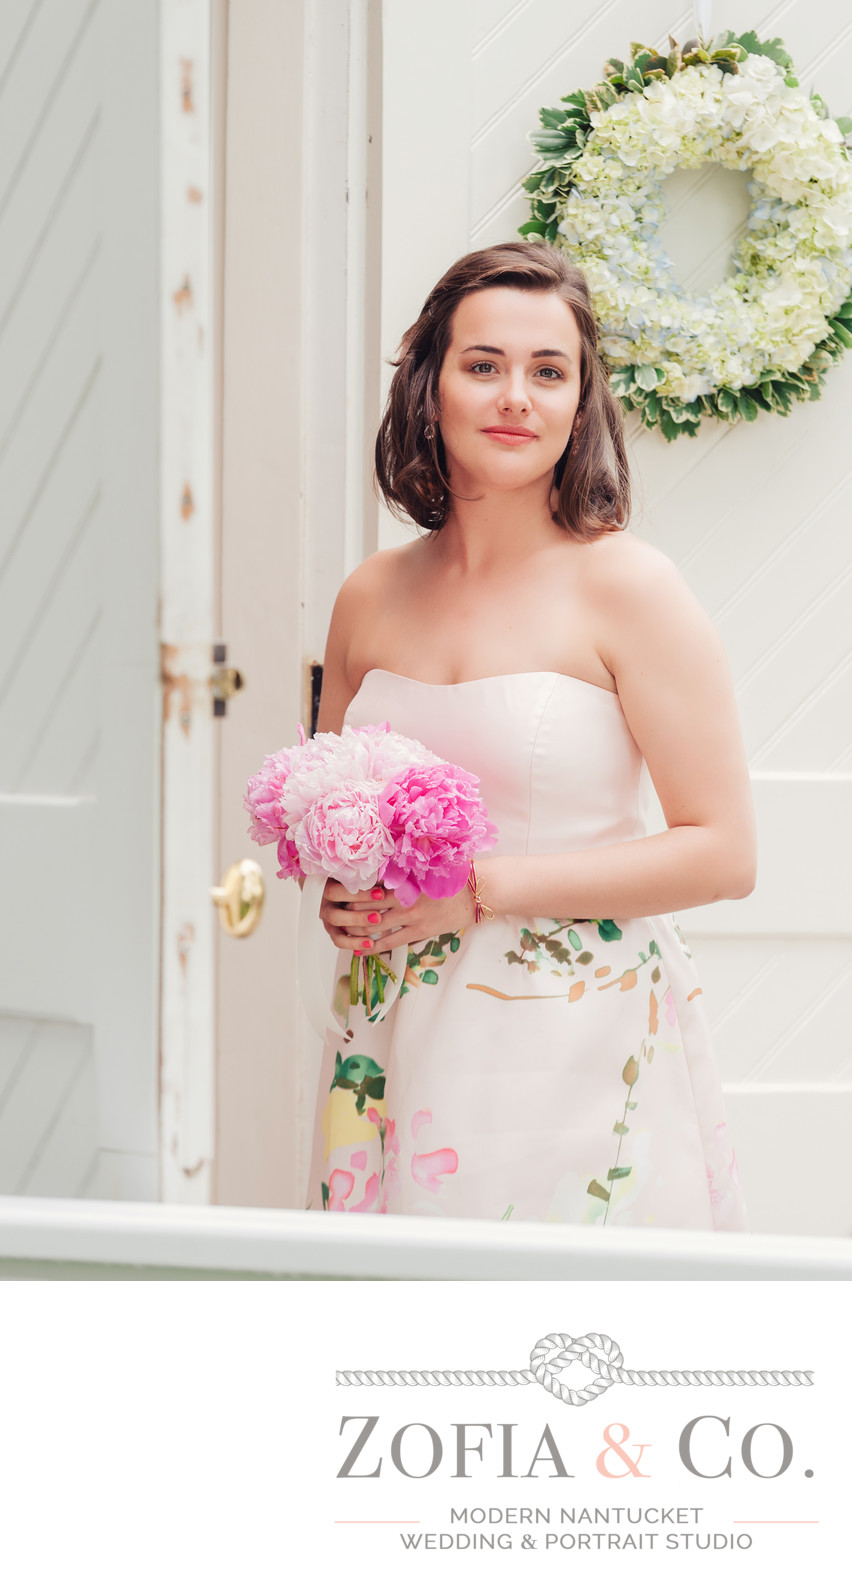 floral bridesmaids dress with hydrangea wreath at sconset chapel